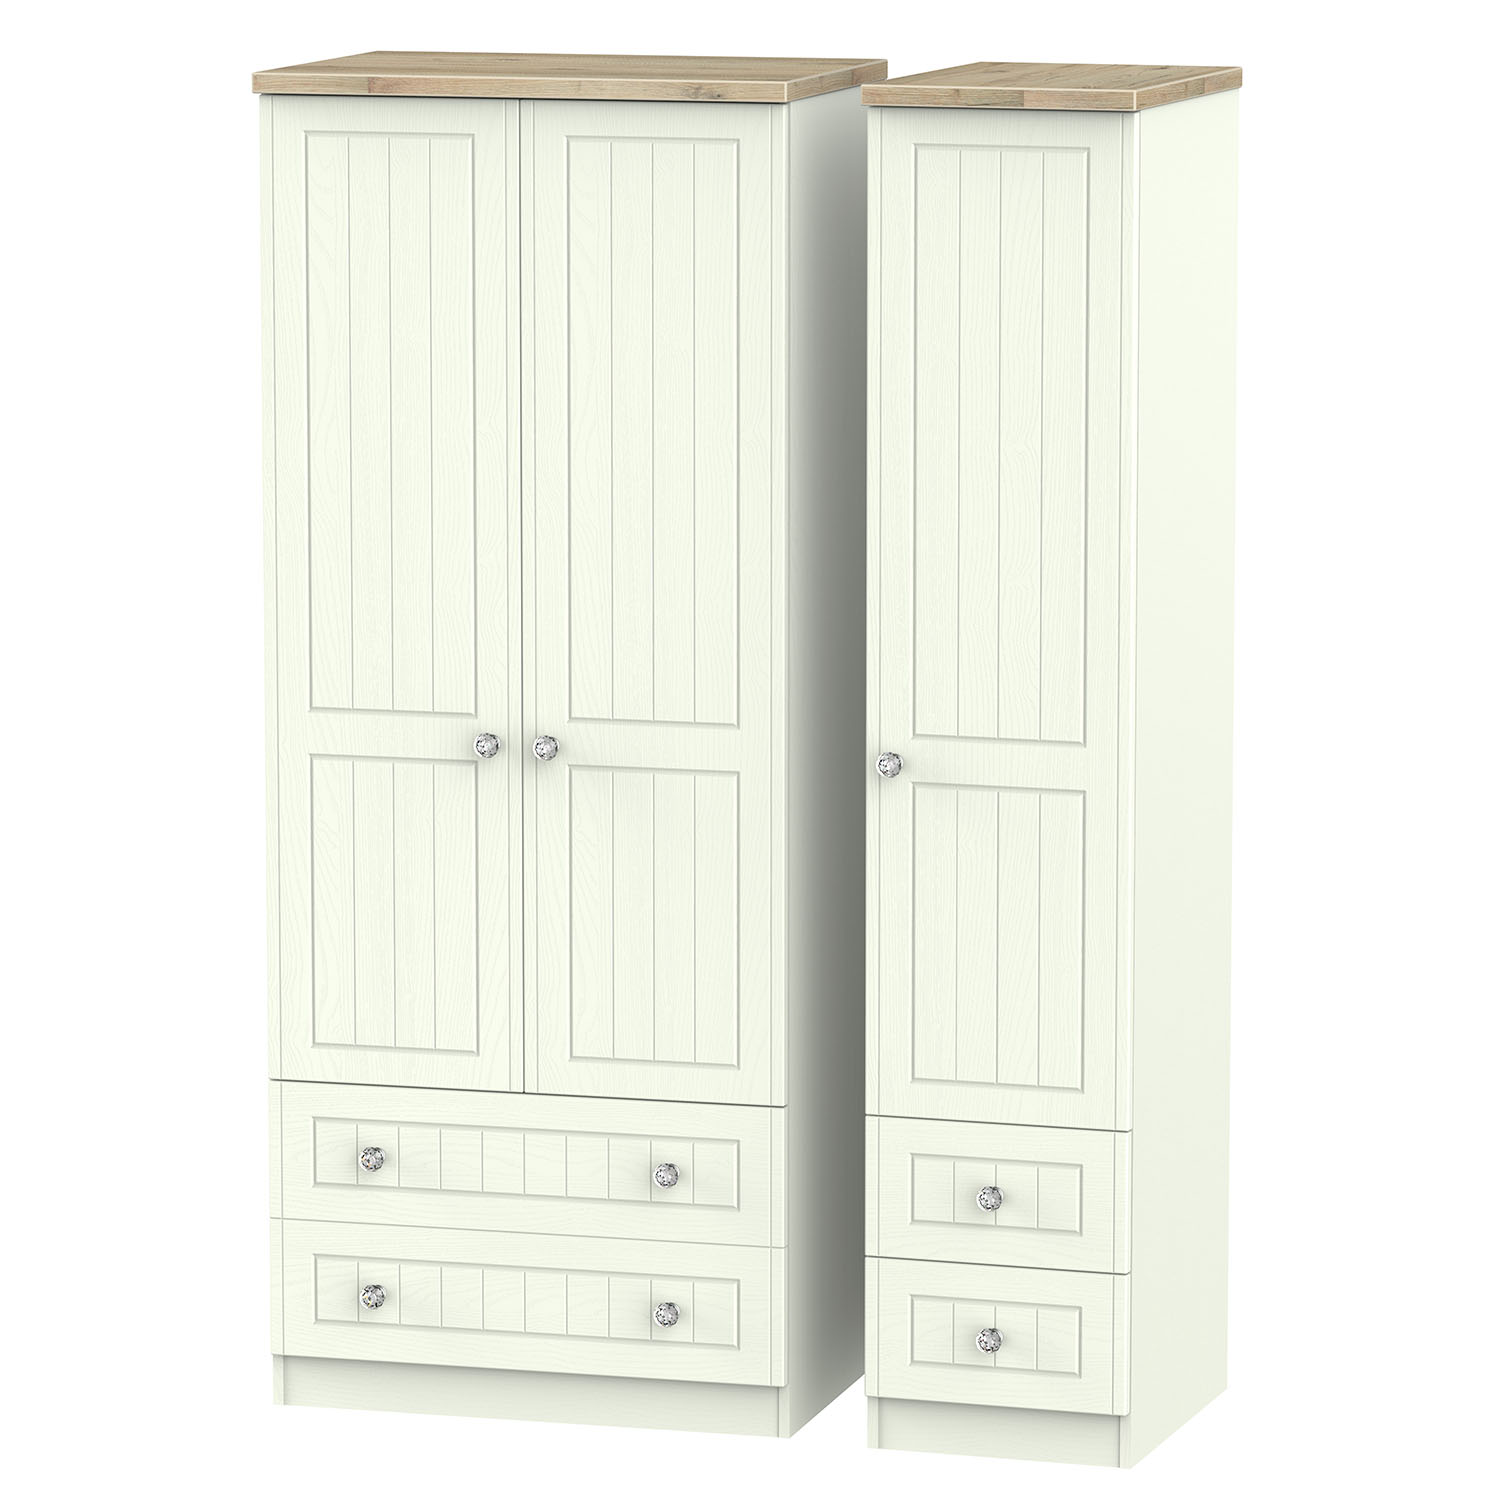 Rome Triple 2 Drawer Drawer Robe